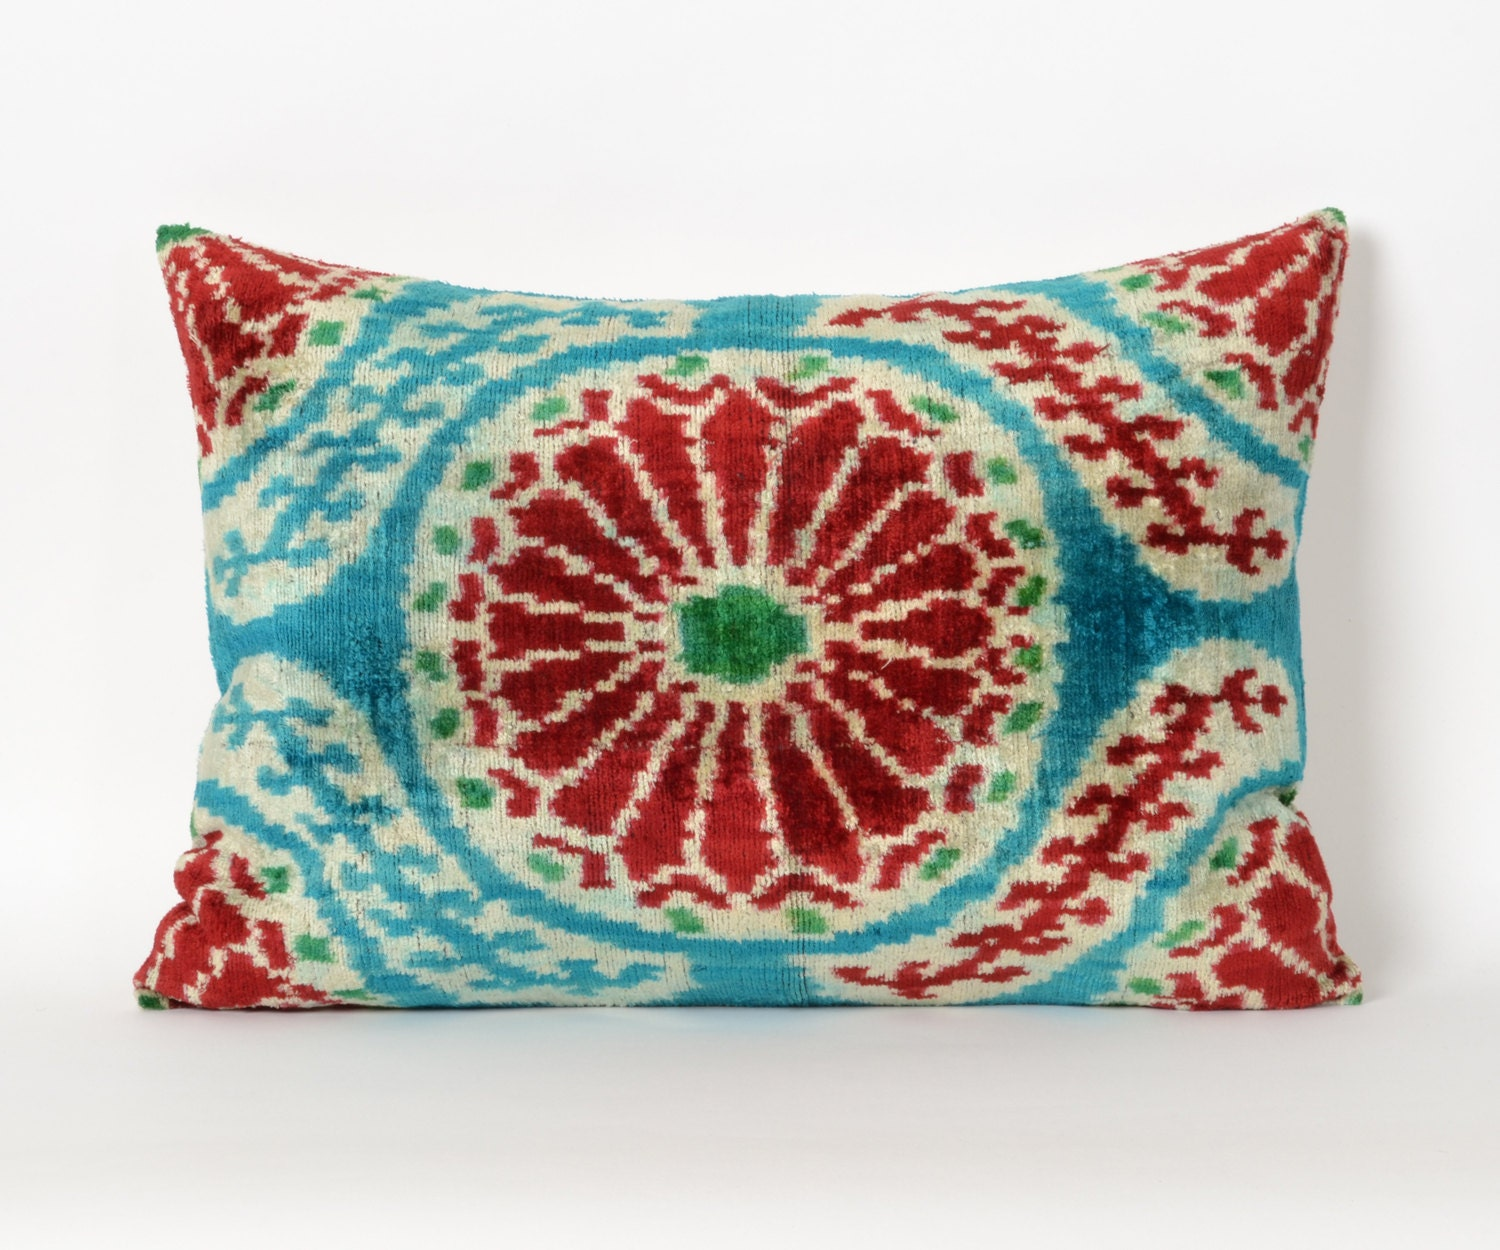 Throw Pillows Velvet : decorative pillow ikat pillow velvet pillow throw pillow